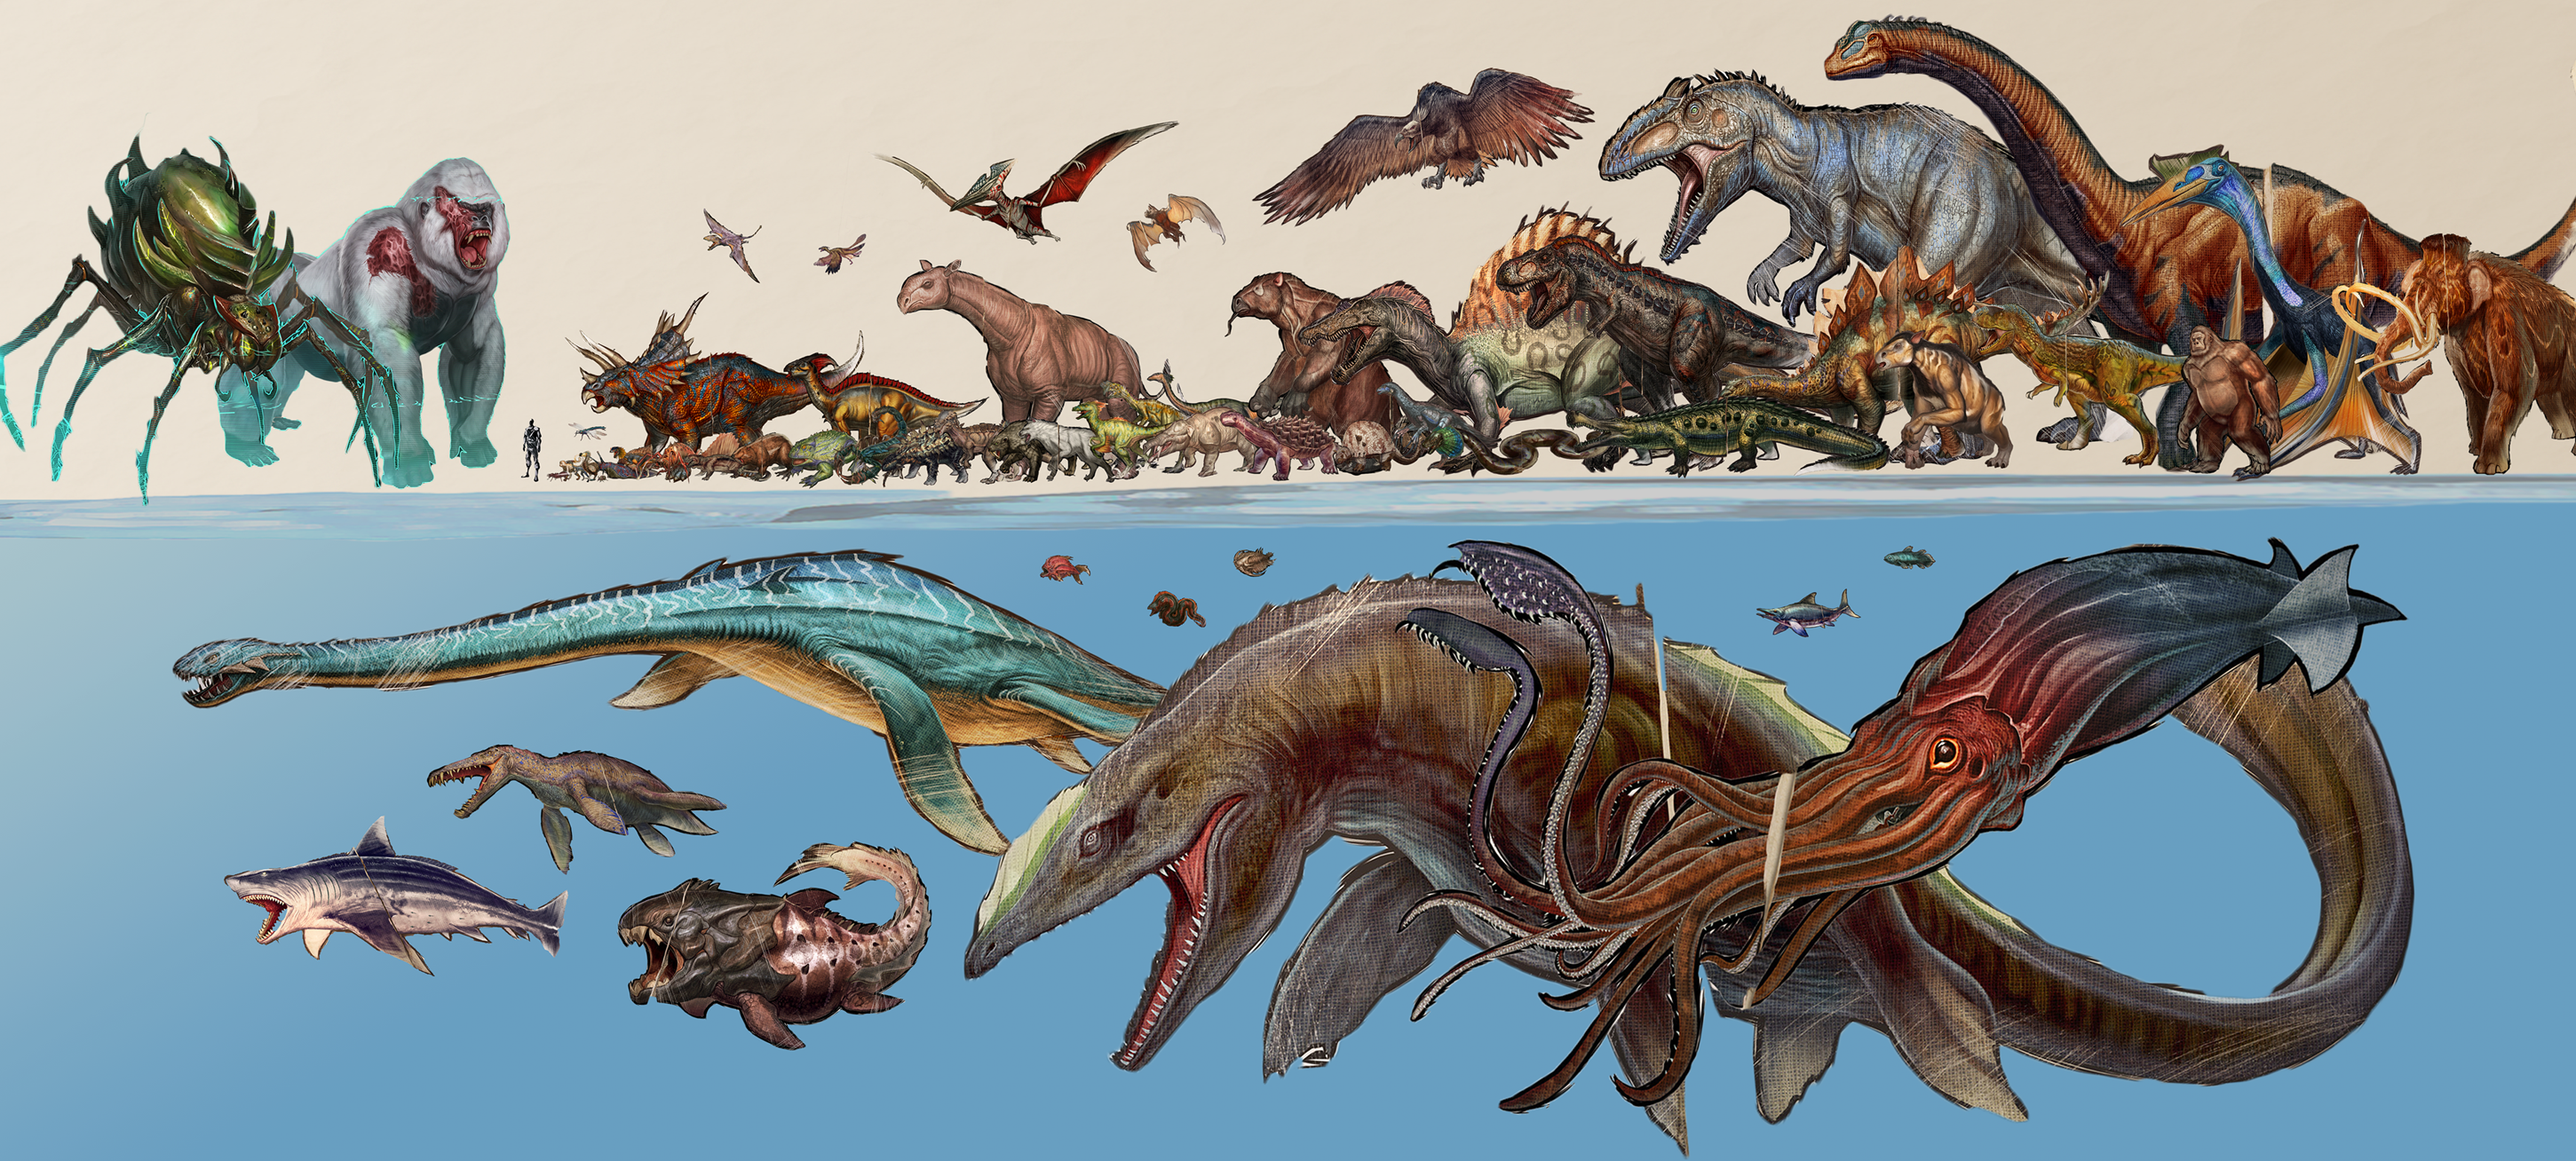 Ark survival evolved nextgen dinosaur feces the something awful juffowup posted malvernweather Image collections